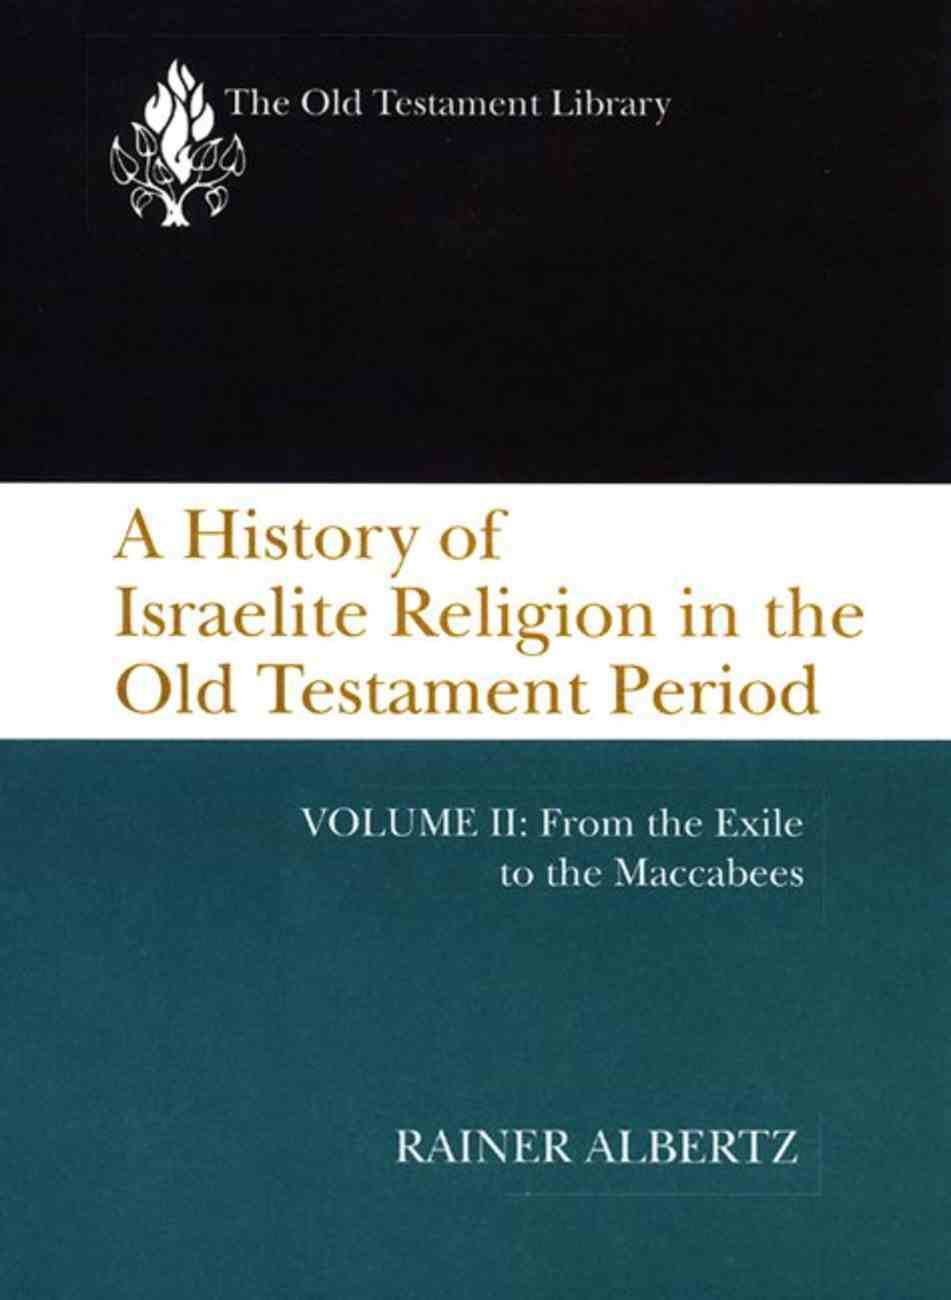 A History of Israelite Religion (Volume 2) (Old Testament Library Series) Paperback